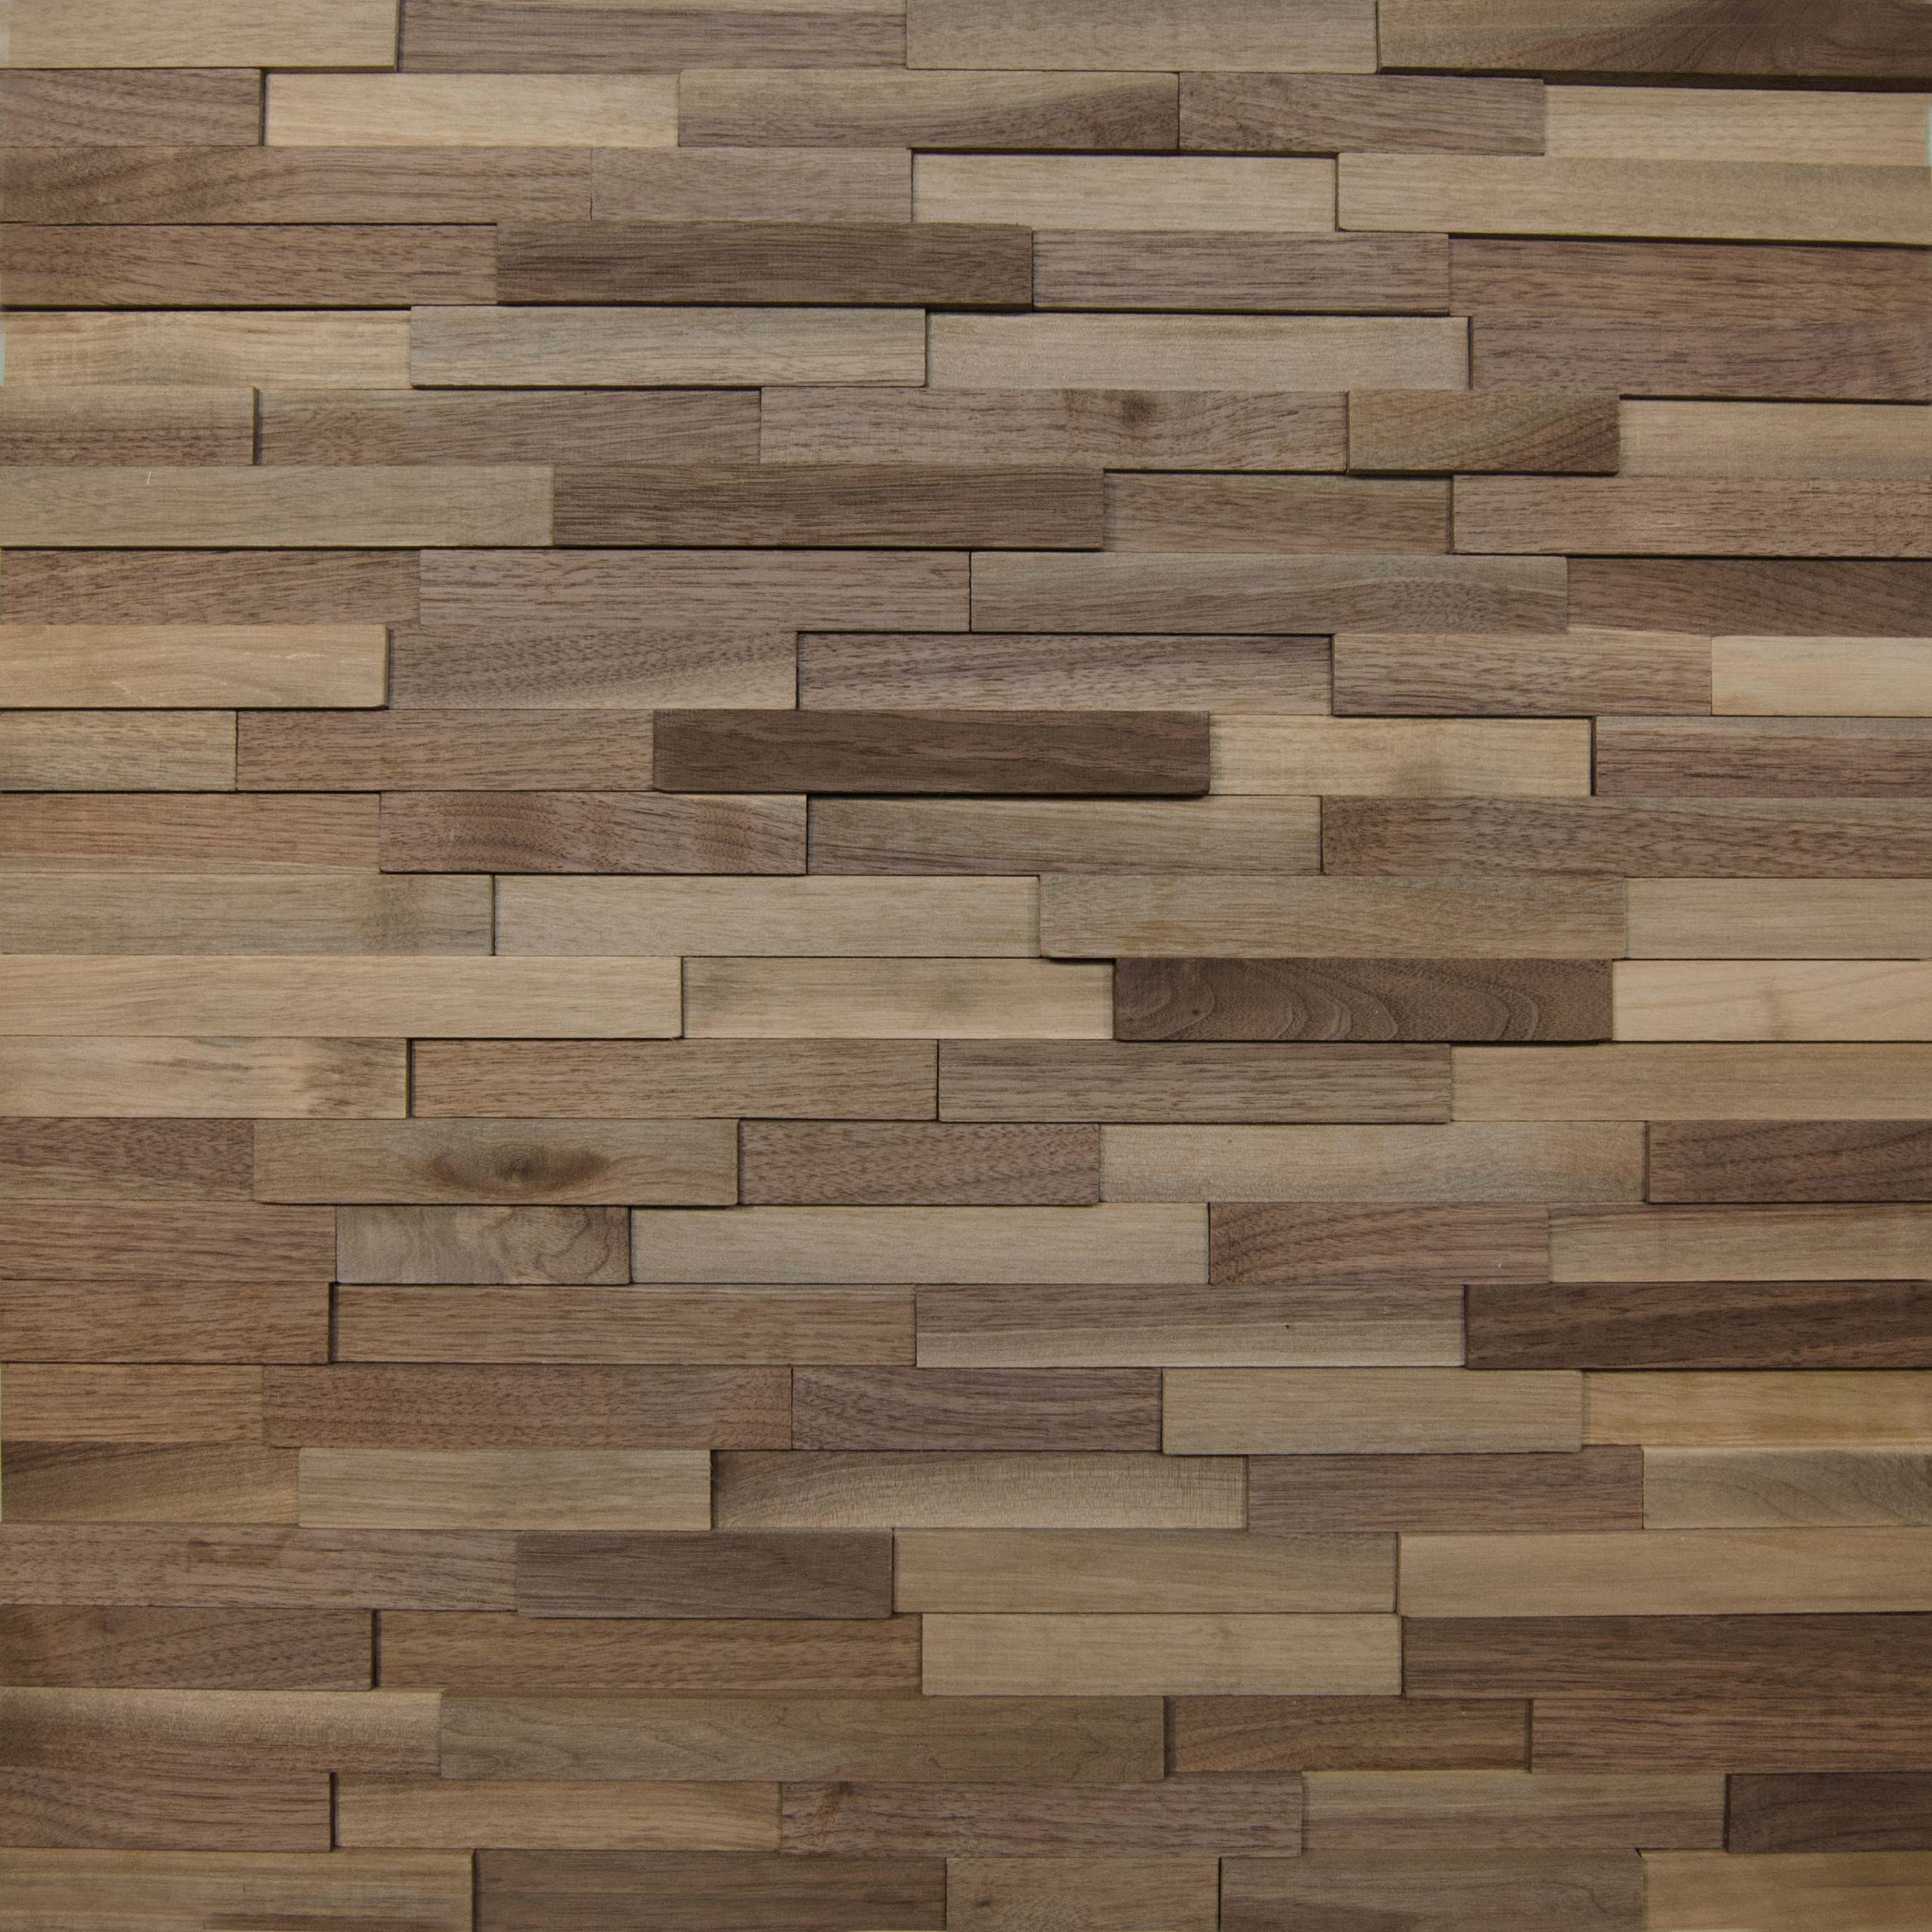 Wallure Striped - Walnut - Narrow - Sleek - Natural Wooden ...